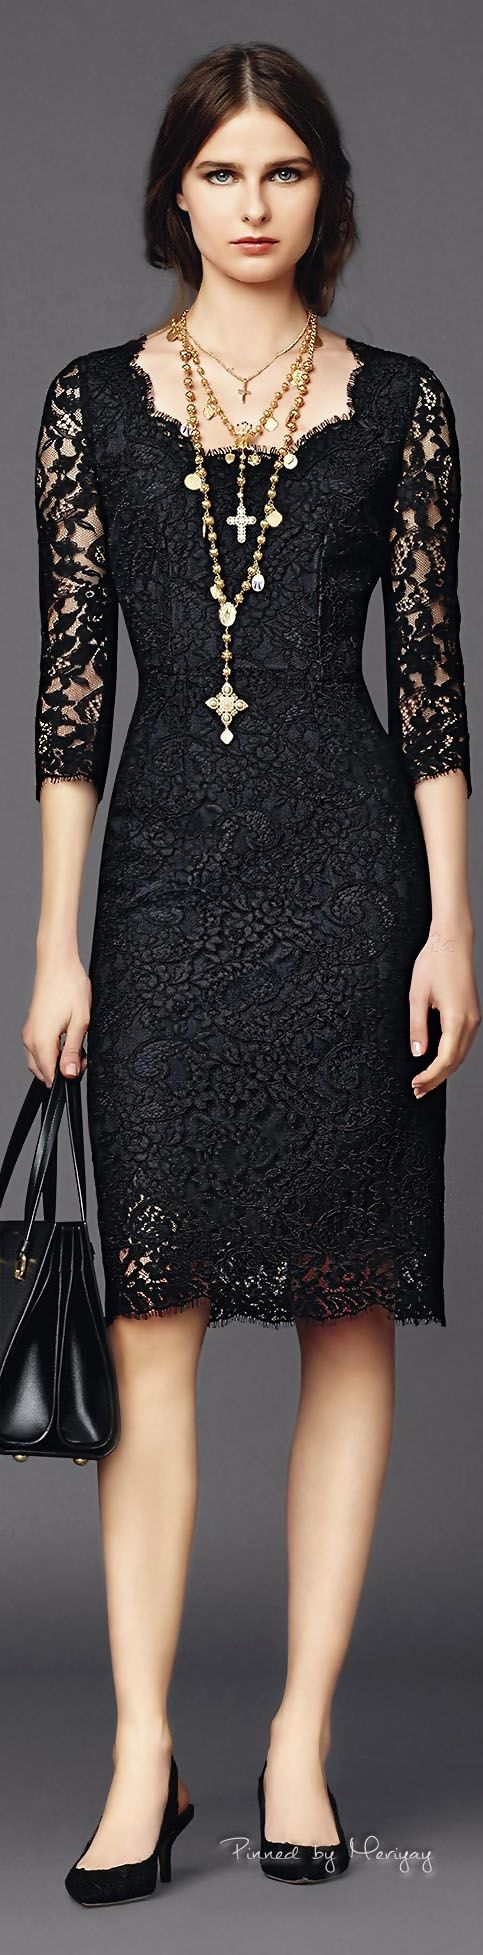 ♔Dolce & Gabbana.2015♔ loving sheer black (and lace always) for evening this spring